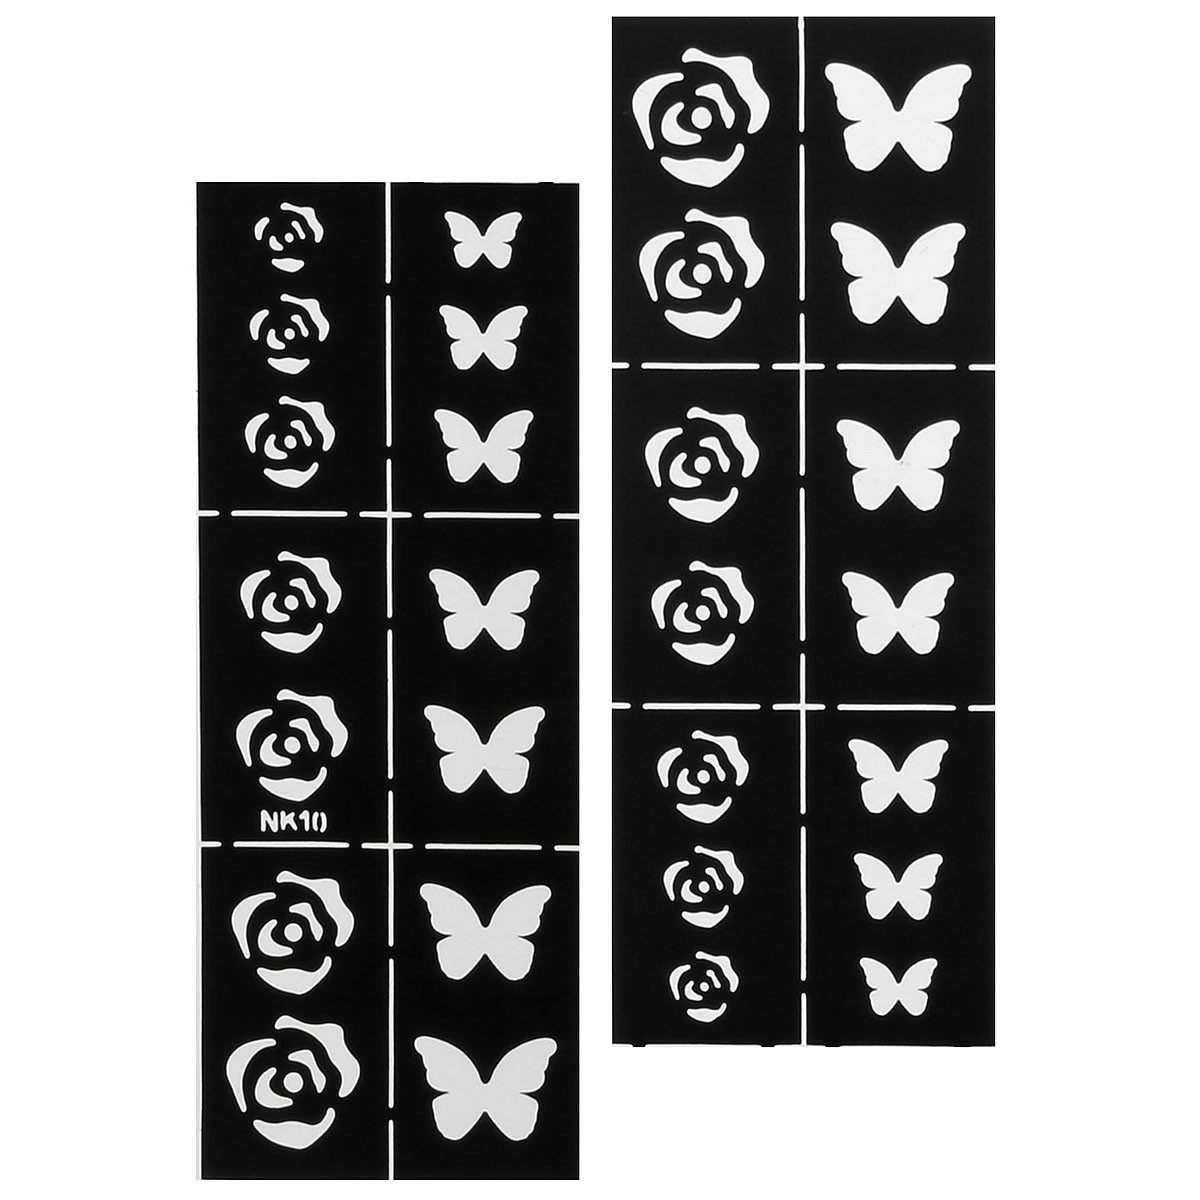 nail art stencils designs vinyl diecut stickers decal decoration tool. Black Bedroom Furniture Sets. Home Design Ideas